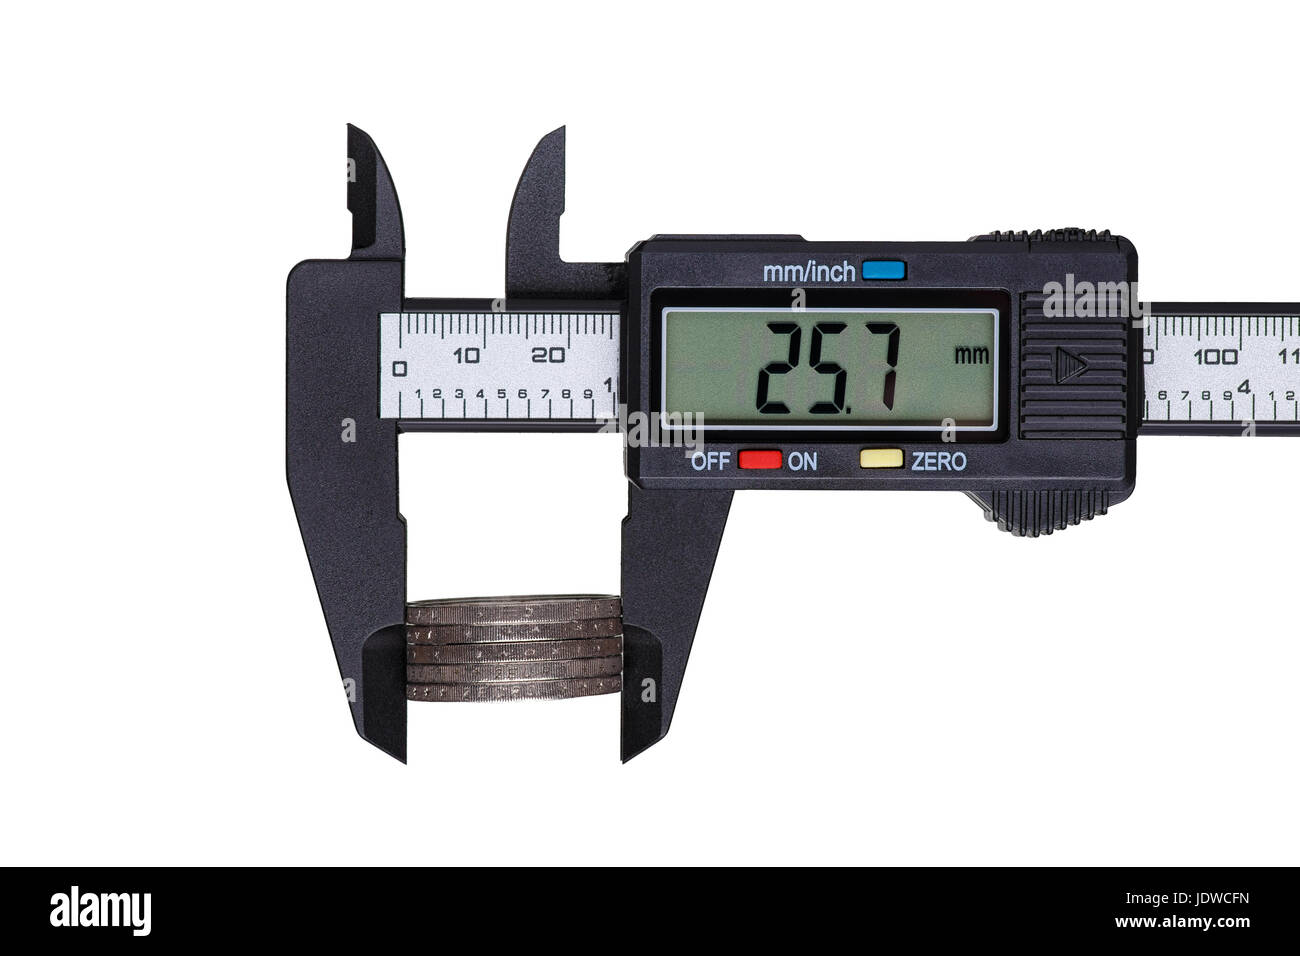 Digital caliper measures the diameter of euro coins. Objects isolated on white background. - Stock Image